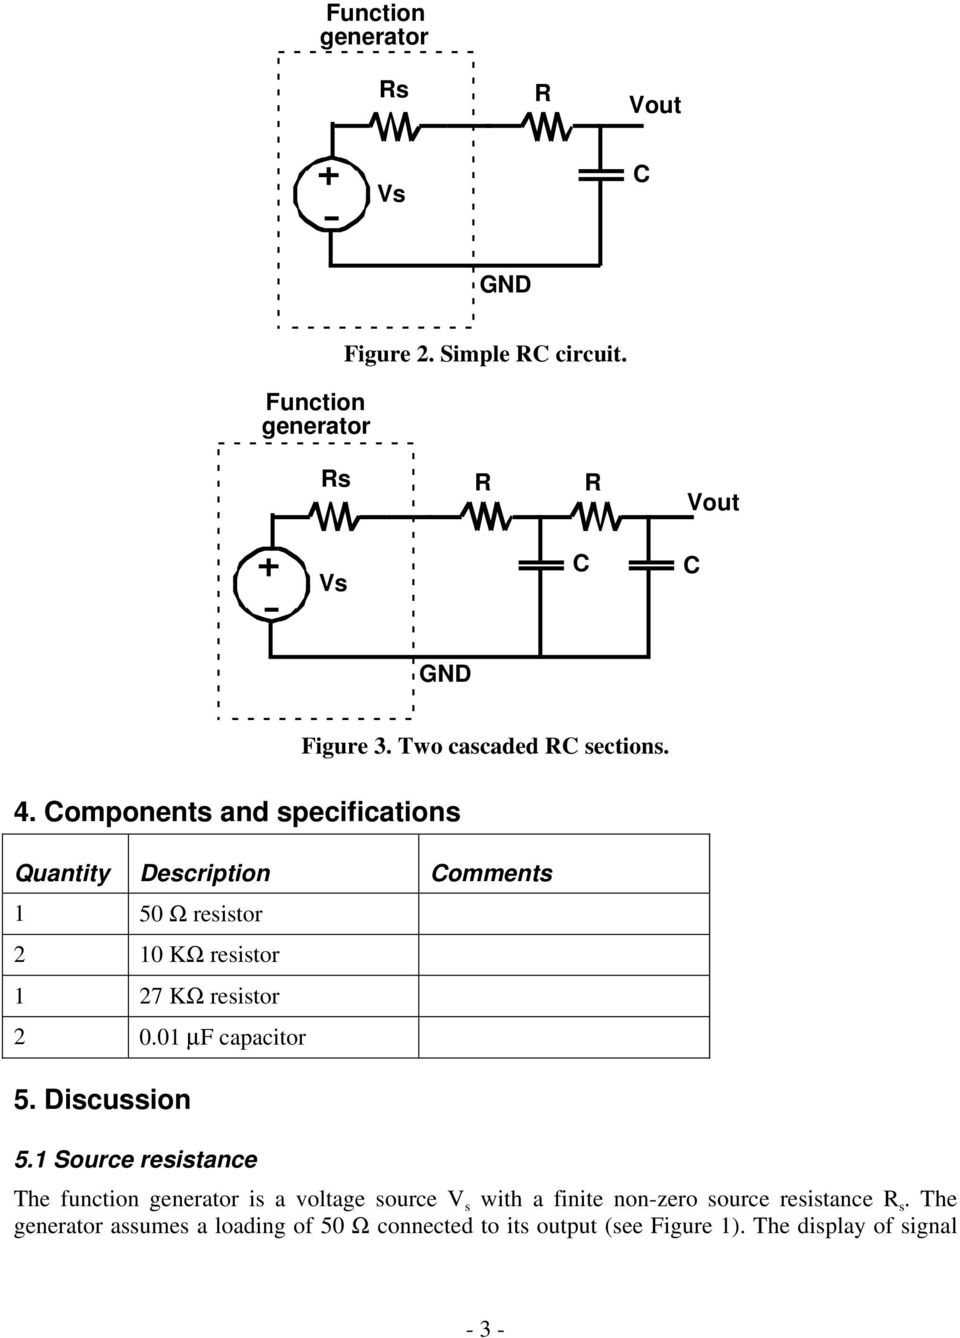 Step Response Of Rc Circuits Pdf Circuitlab Voltage Controlled Switch Off State Resistance 01 Quantity Description Comments 1 50 Resistor 2 10 K 27